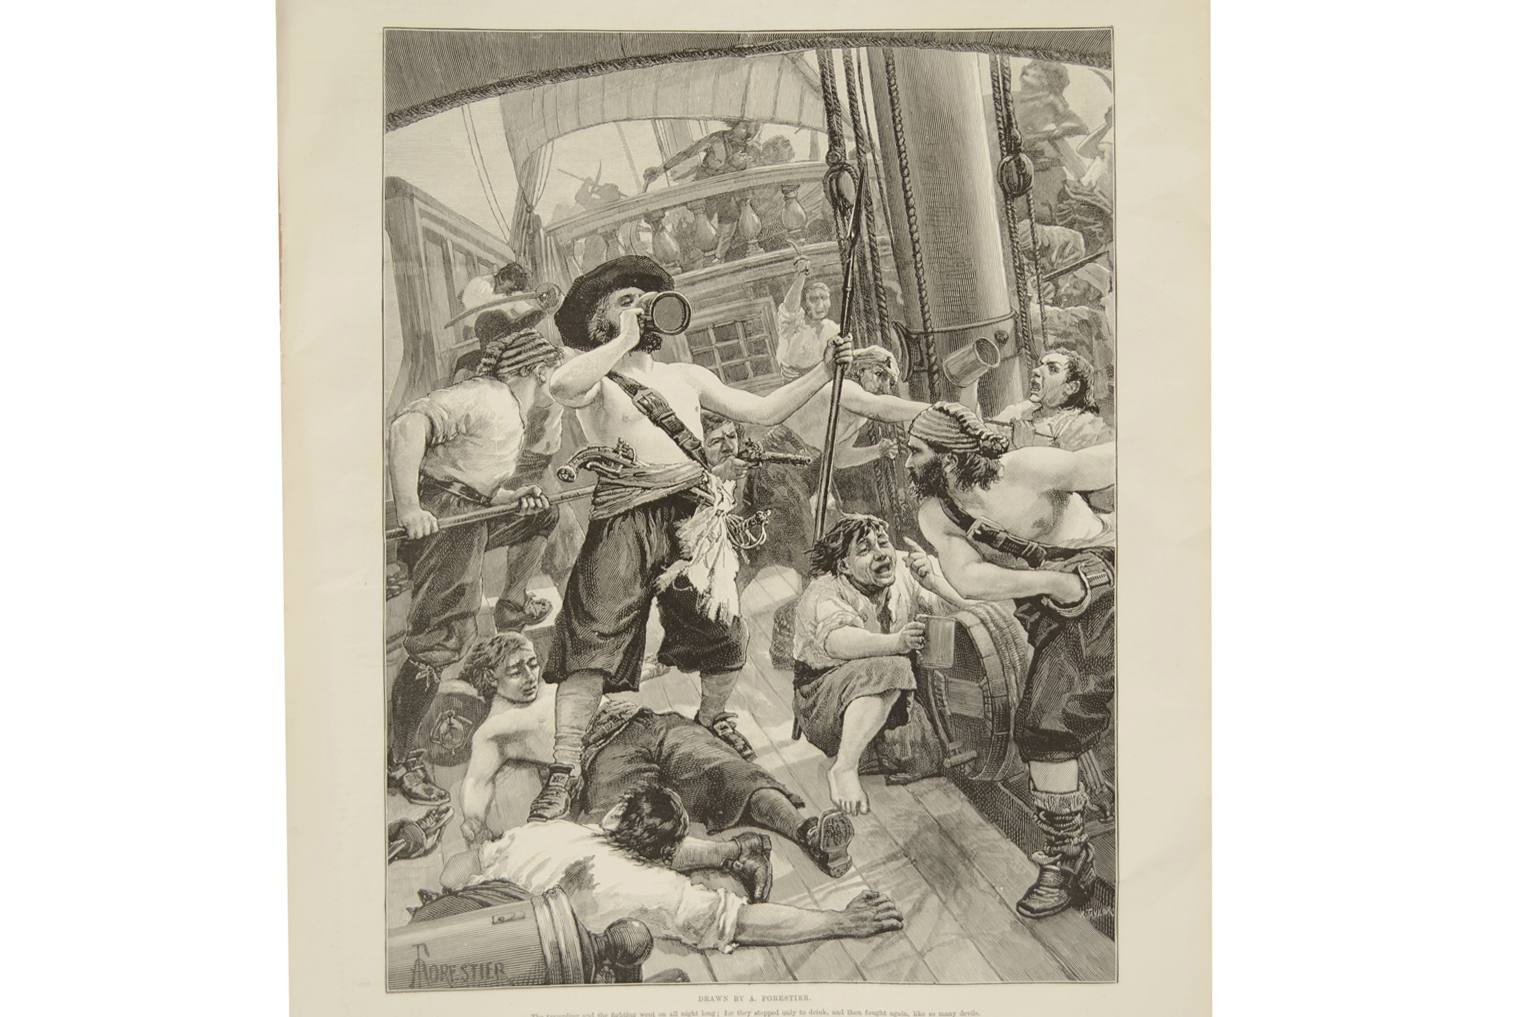 Antiquariato nautico/6088-Illustrazione pirati